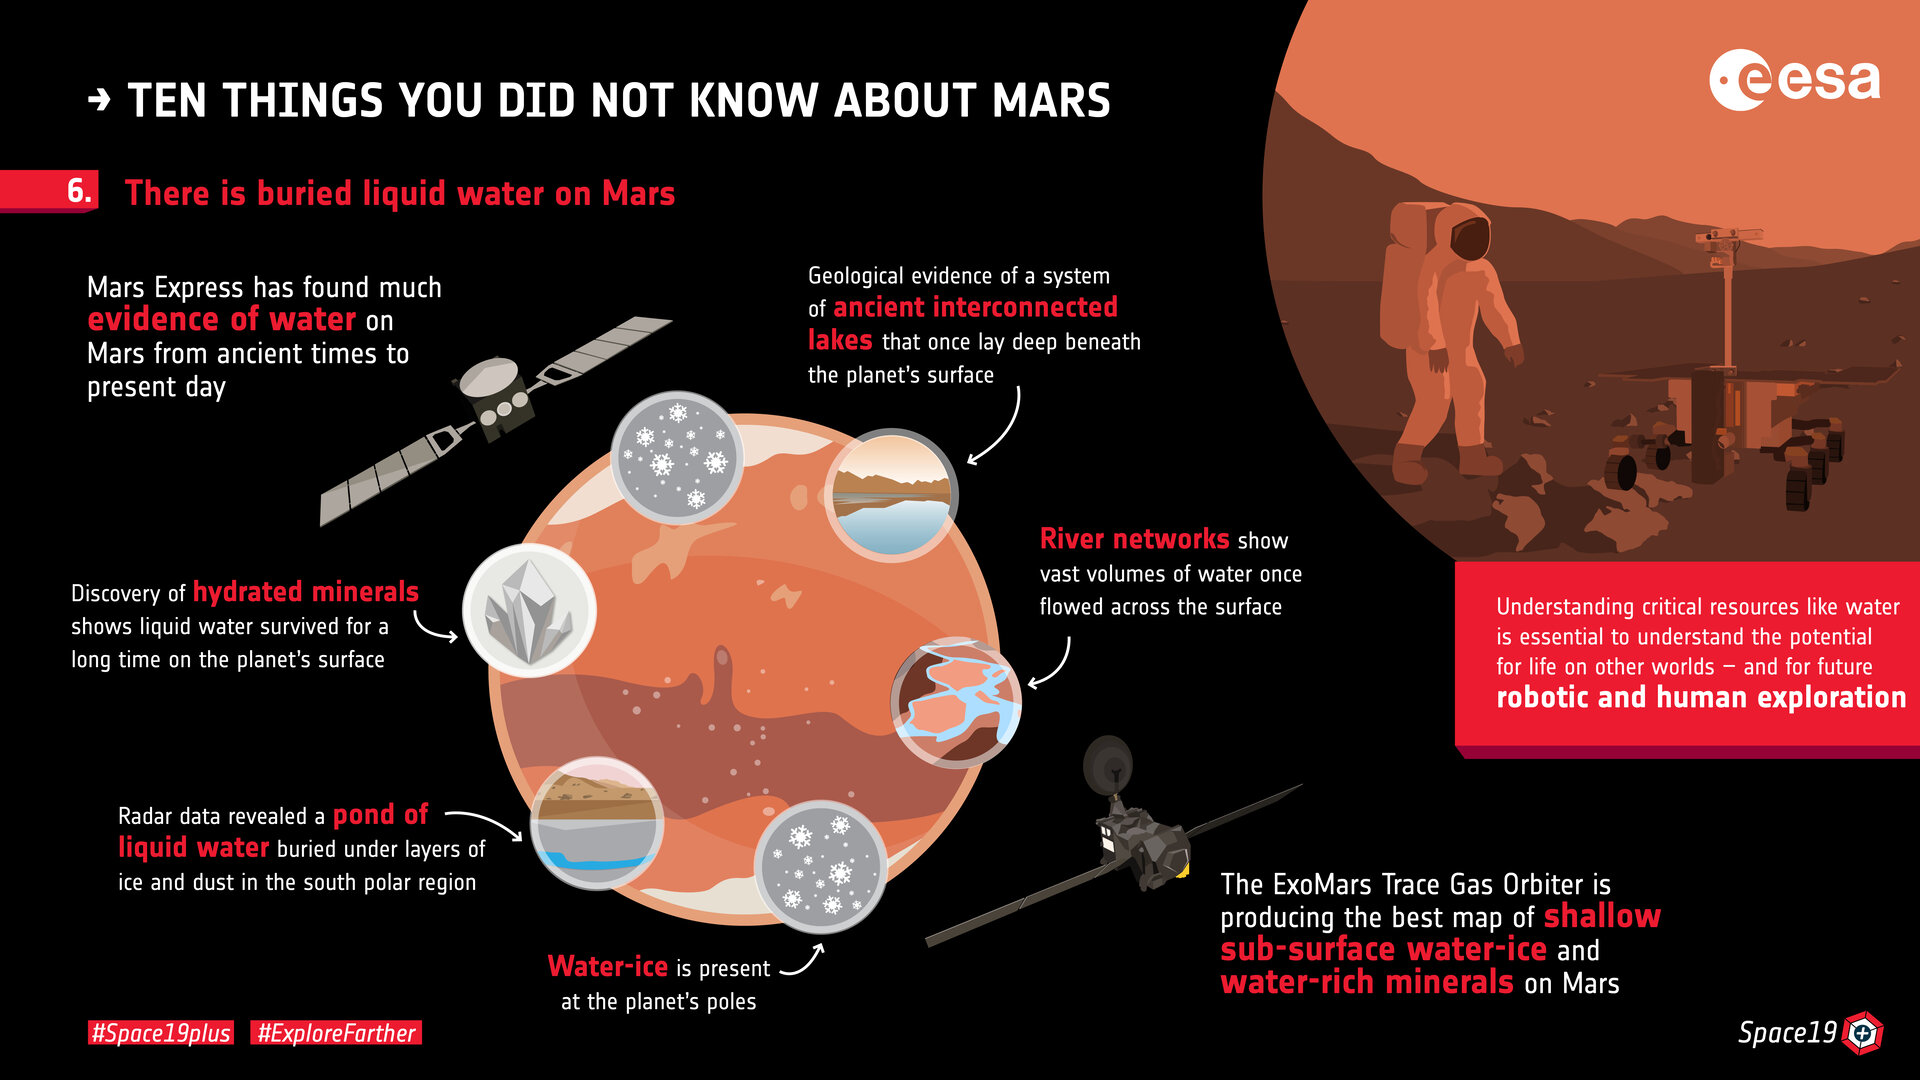 Ten things you did not know about Mars: 6. Water